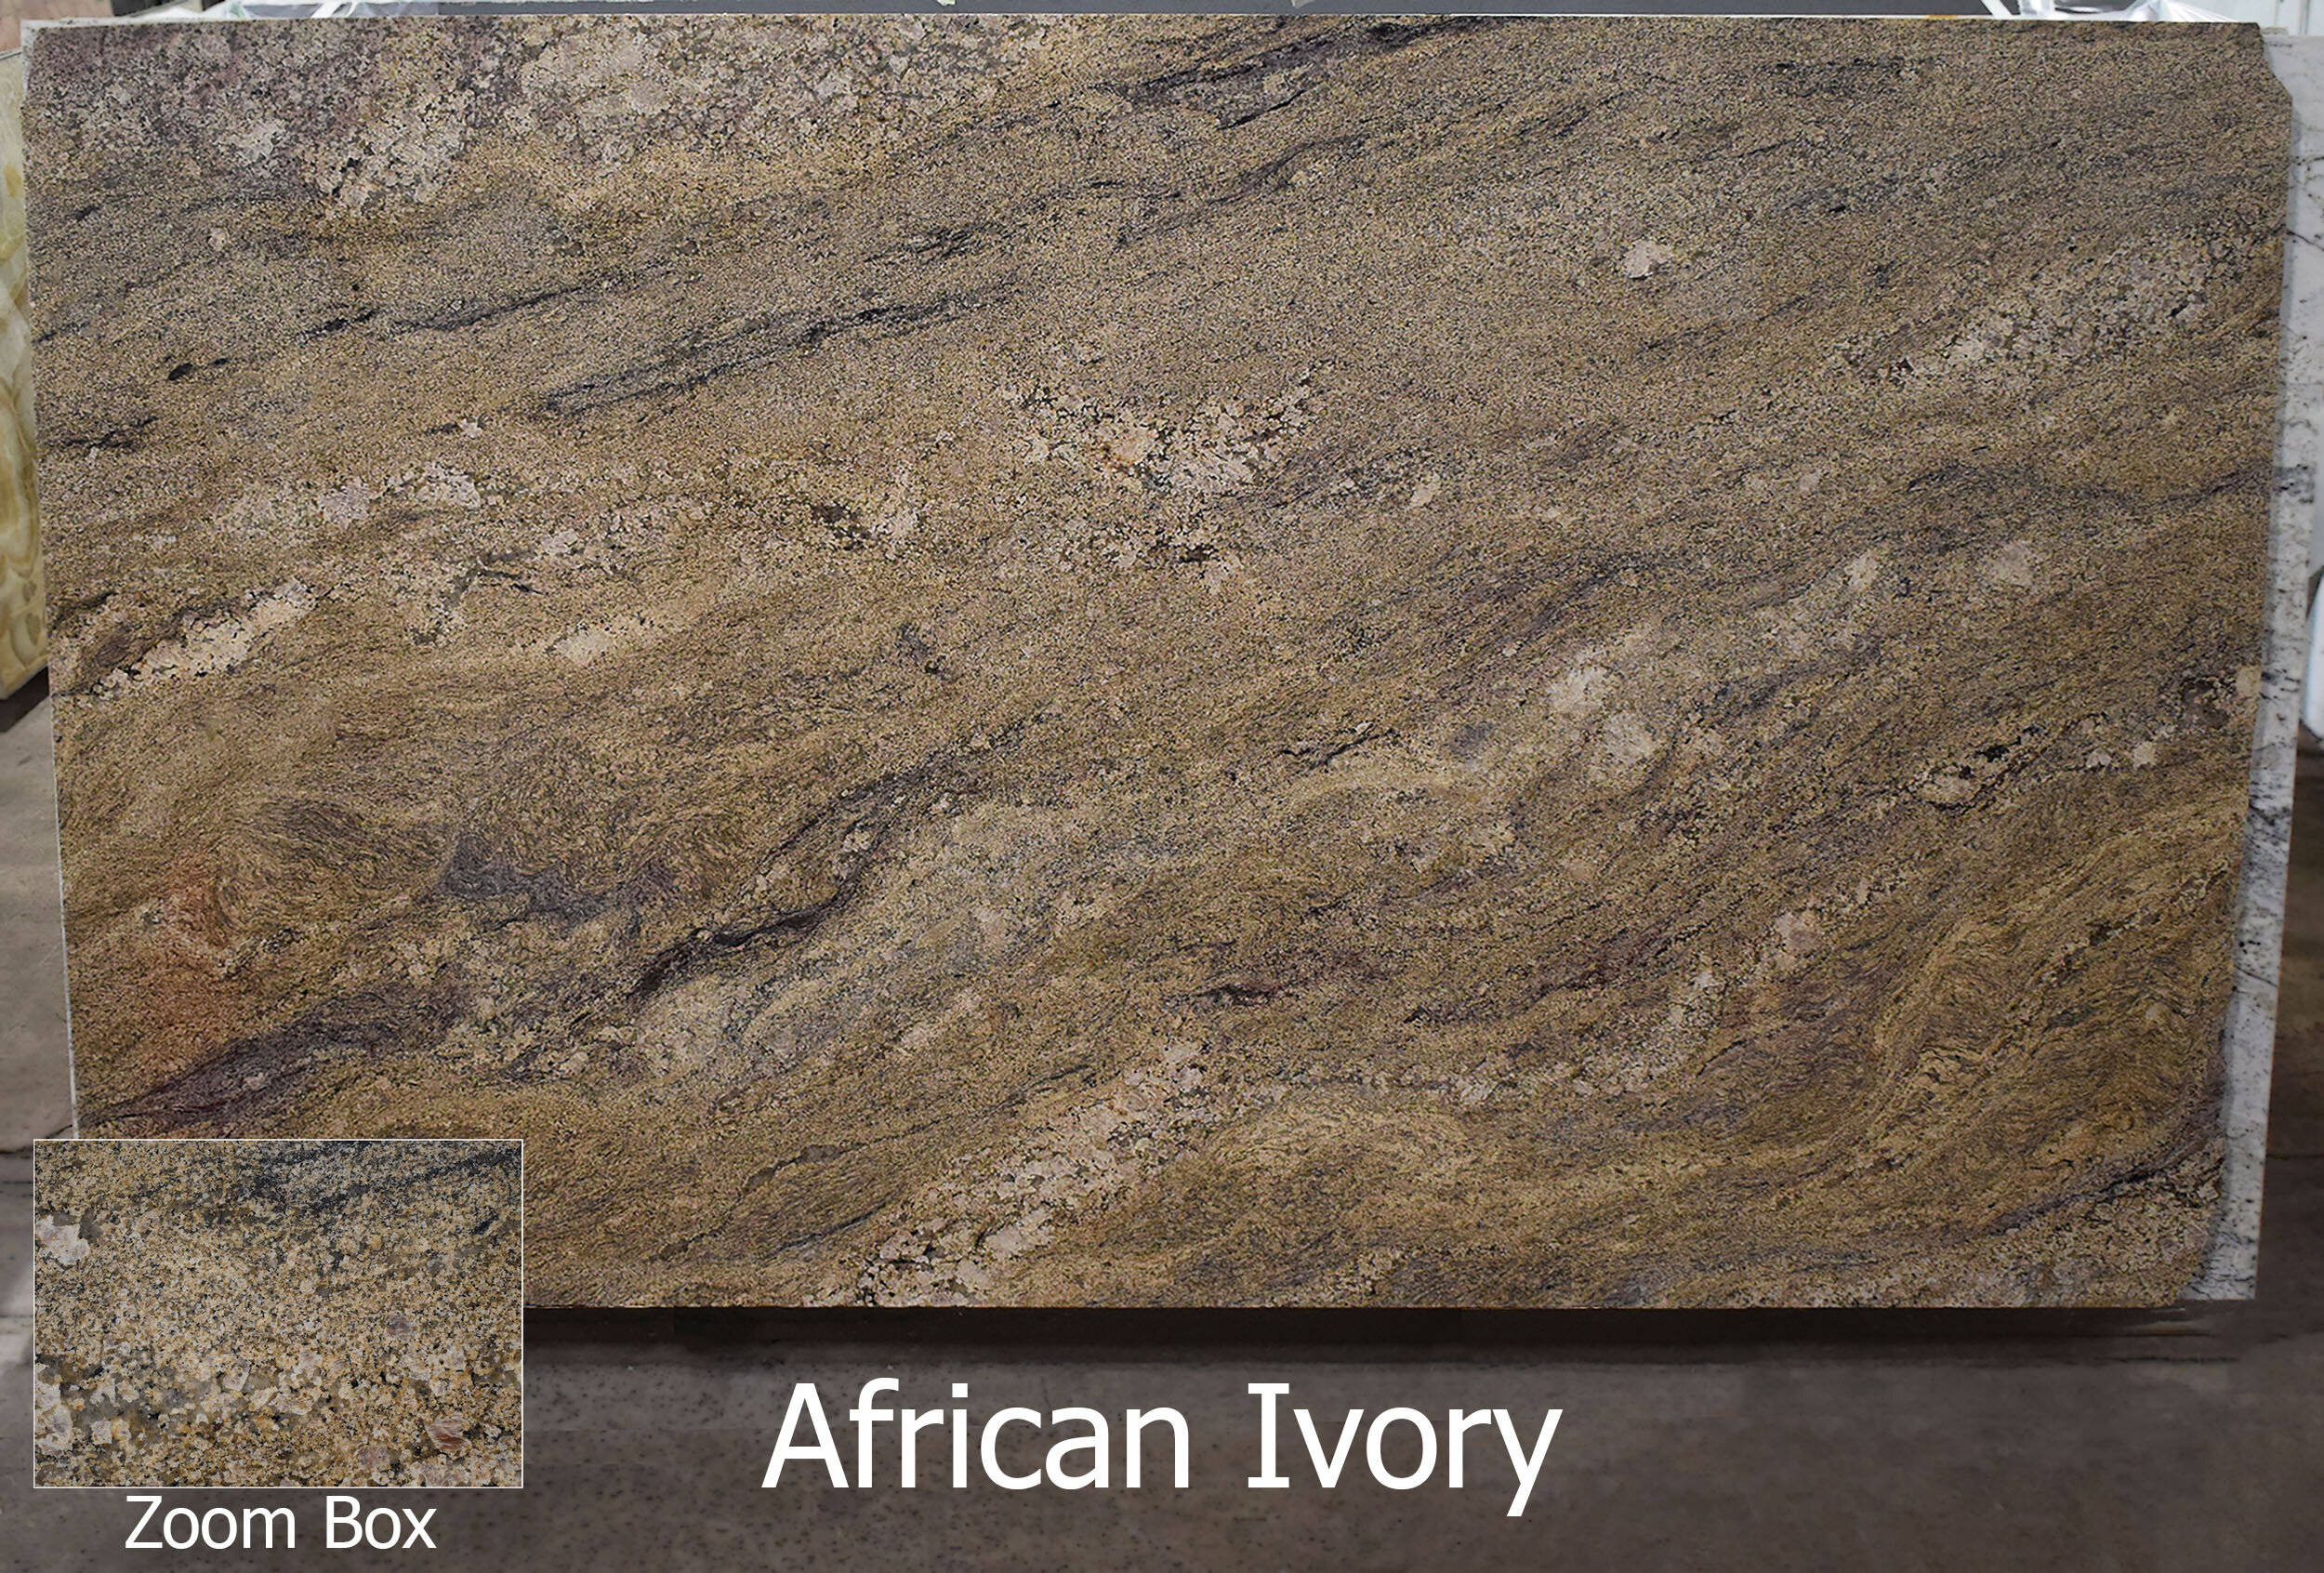 AFRICAN IVORY